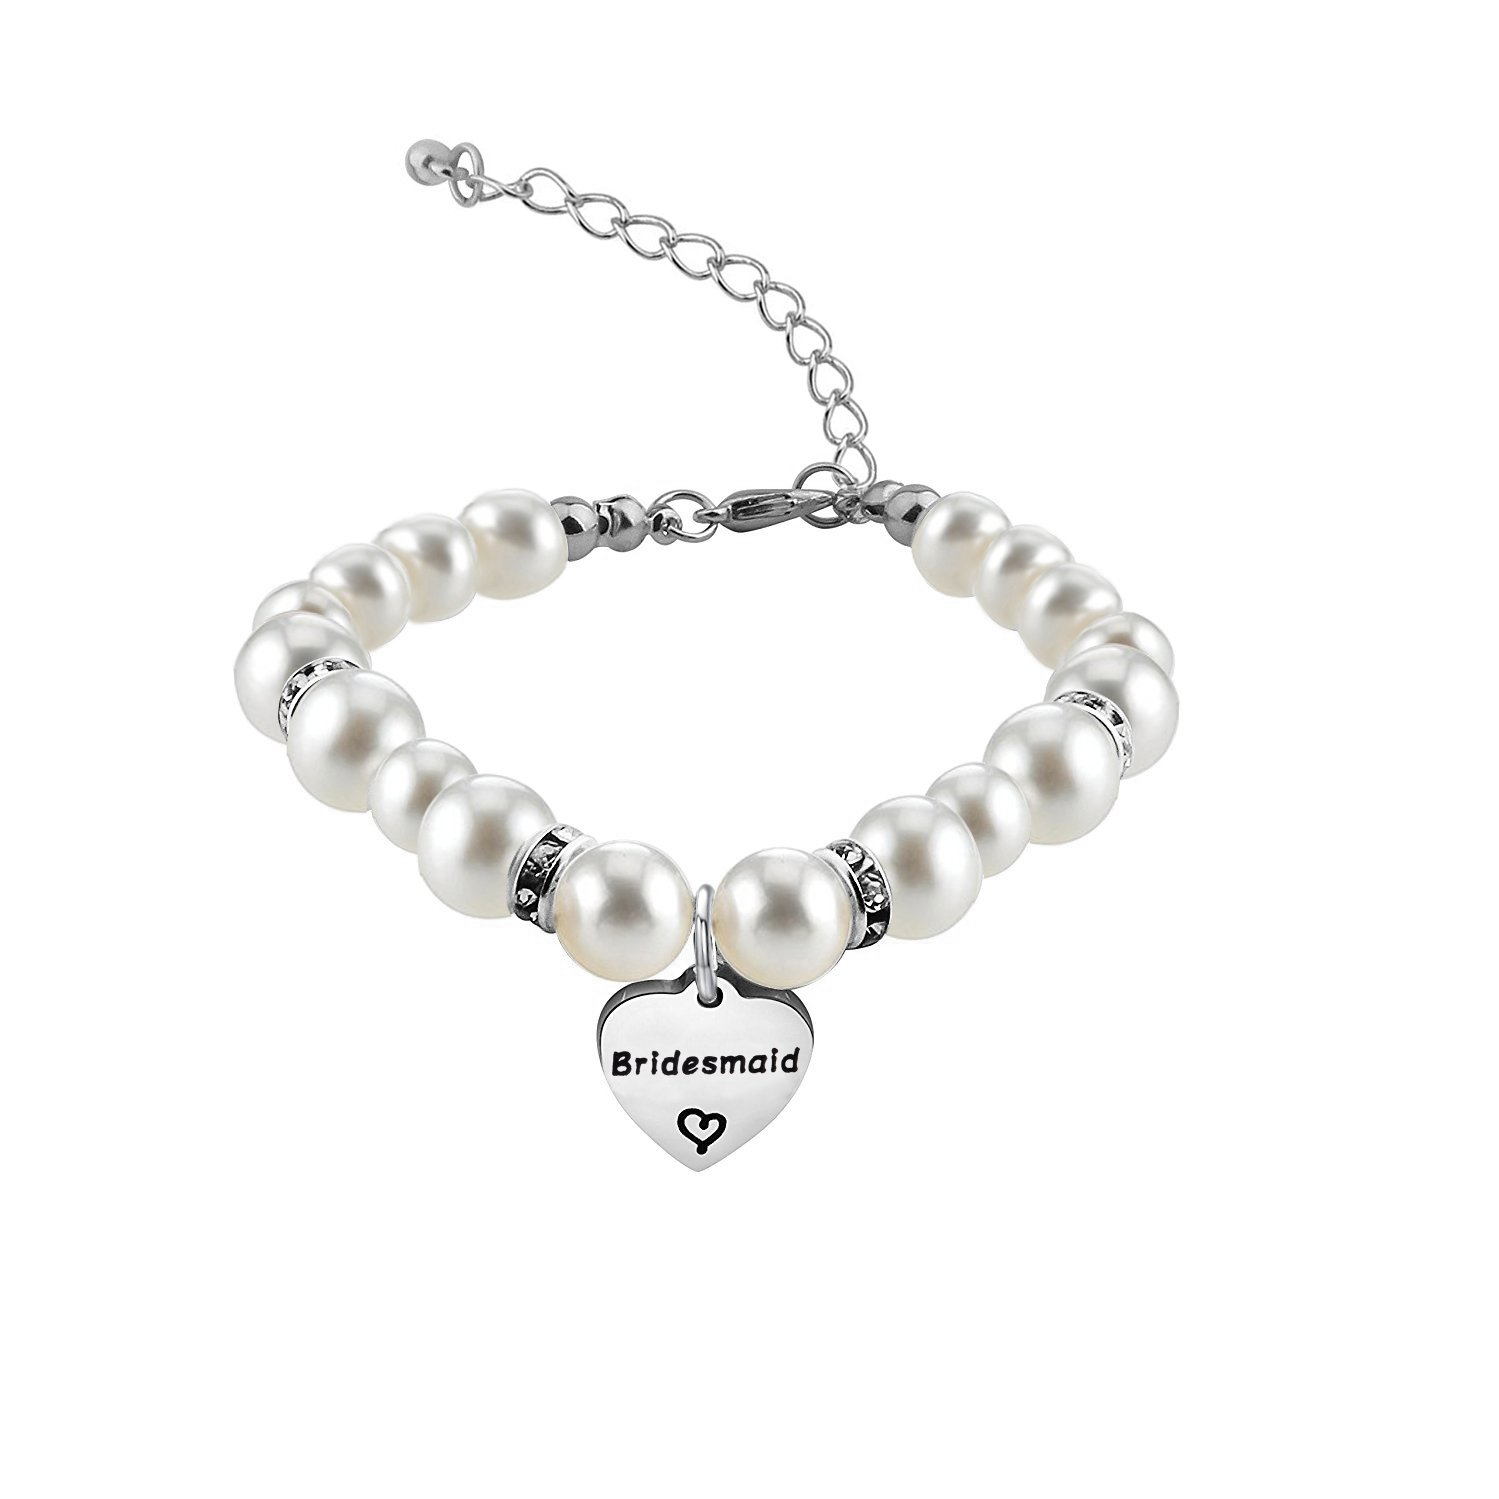 Zuo Bao Bridesmaid Jewelry Gift Crystal Pearl Bracelet for Chief/Junior Bridesmaids (Bridesmaid)